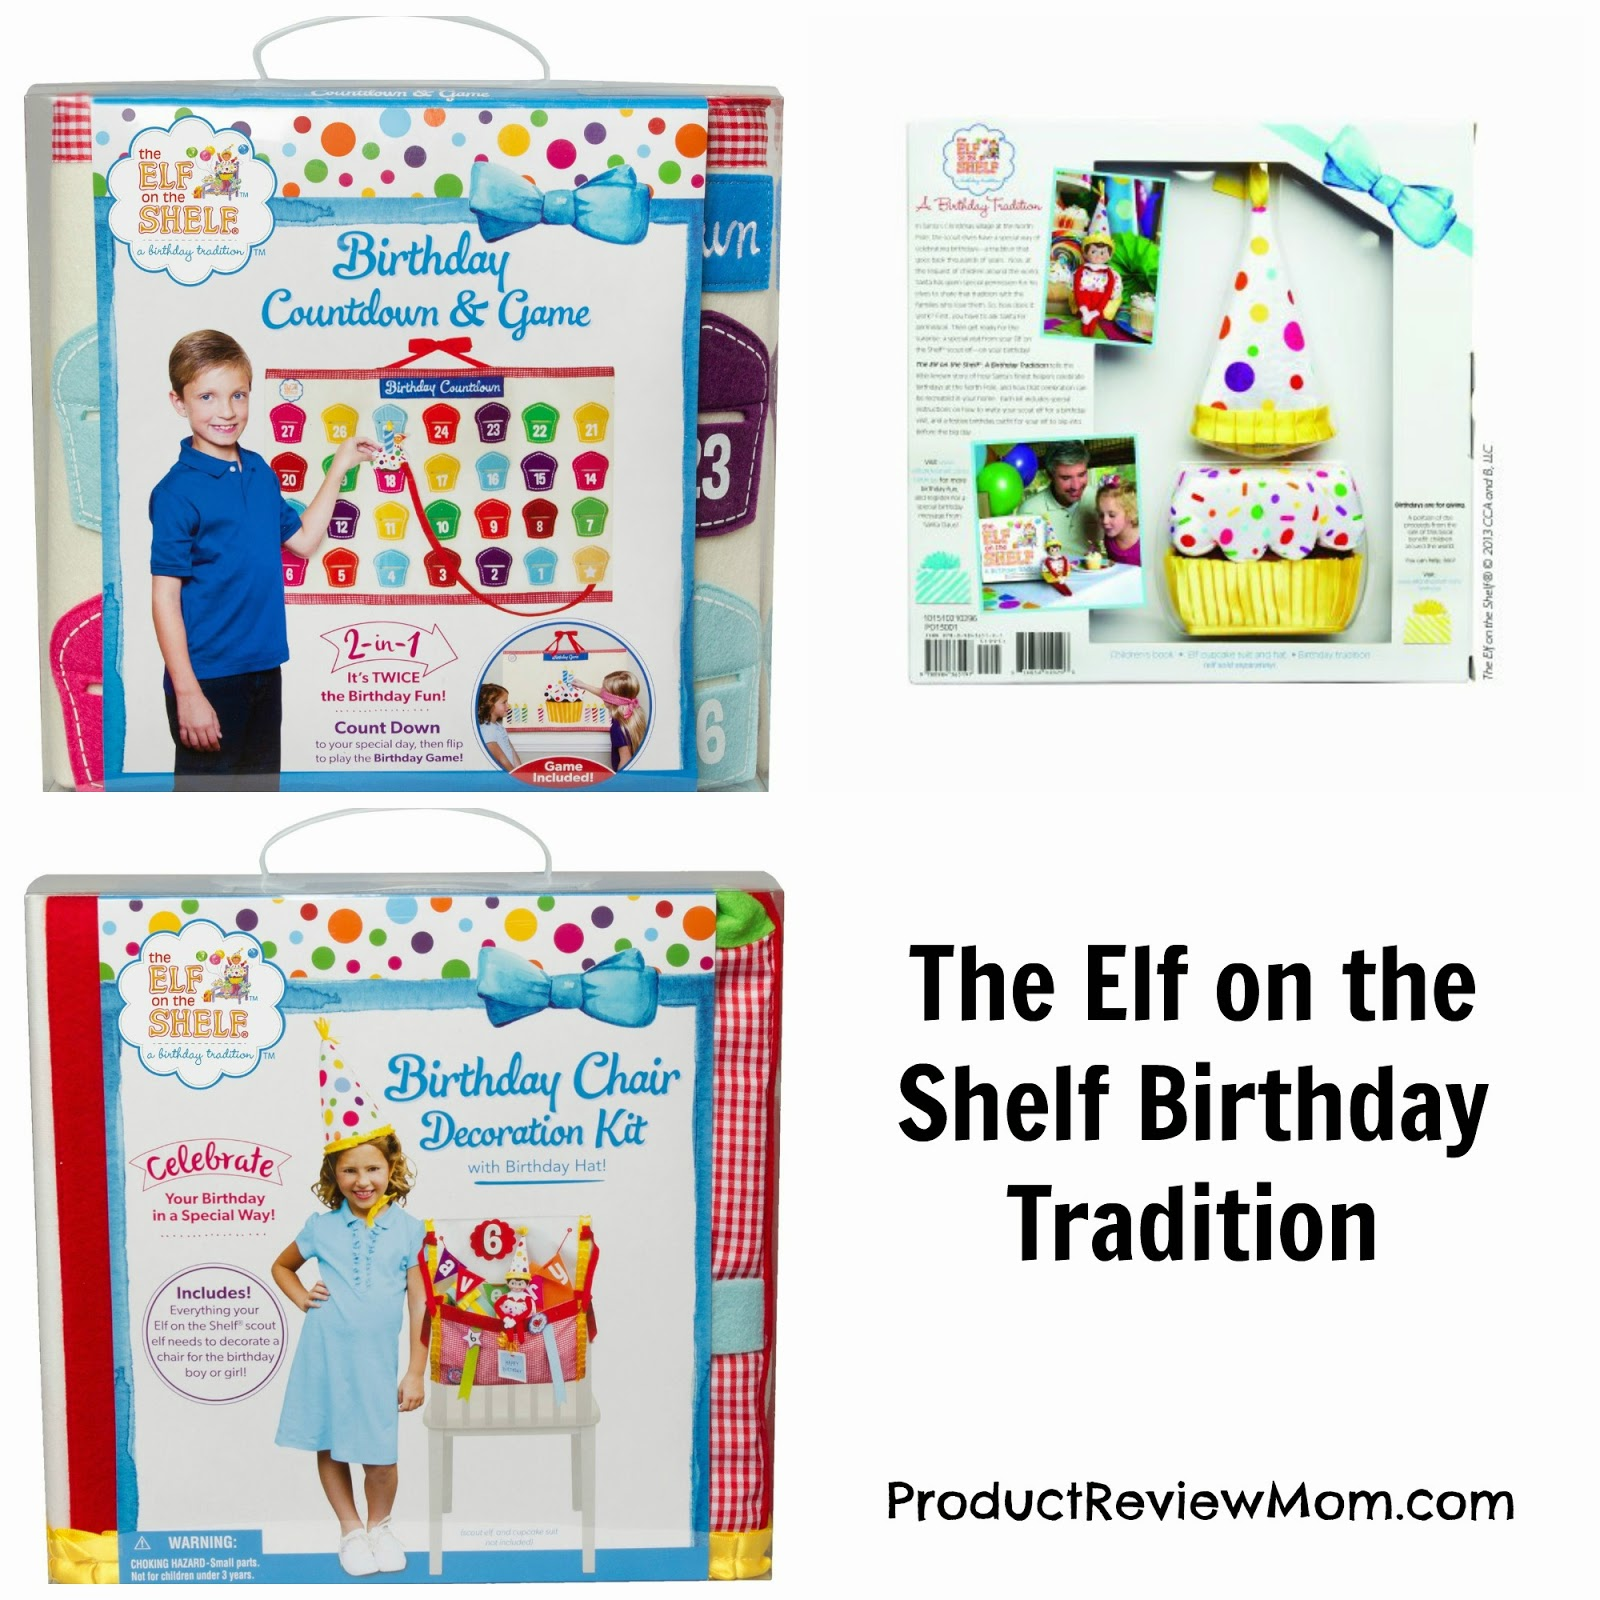 Elf on the Shelf Birthday Day Party Event Recap #ElfBirthday via www.Productreviewmom.com